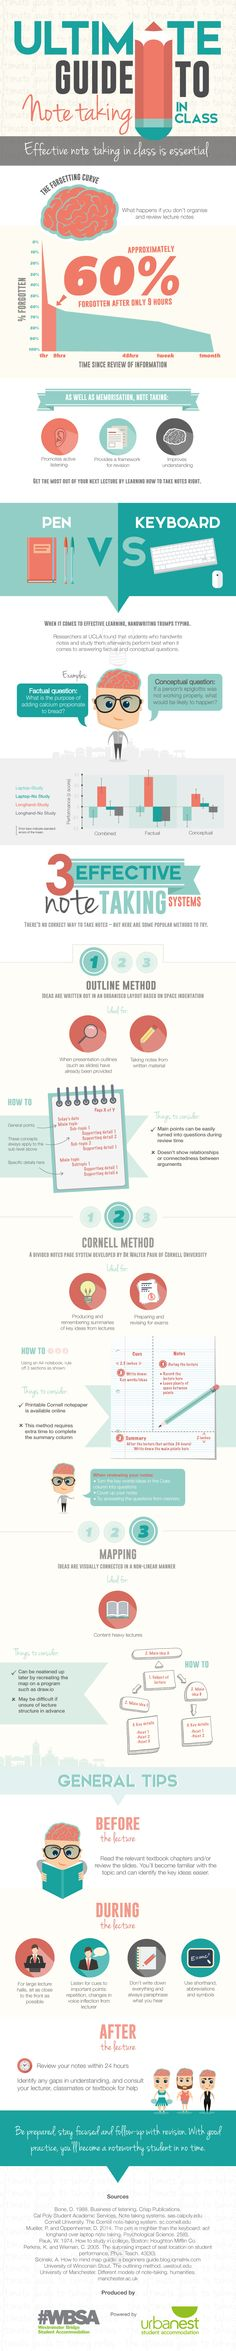 Ultimate Guide to Note-Taking in Class #infographic #NoteTaking #Guide